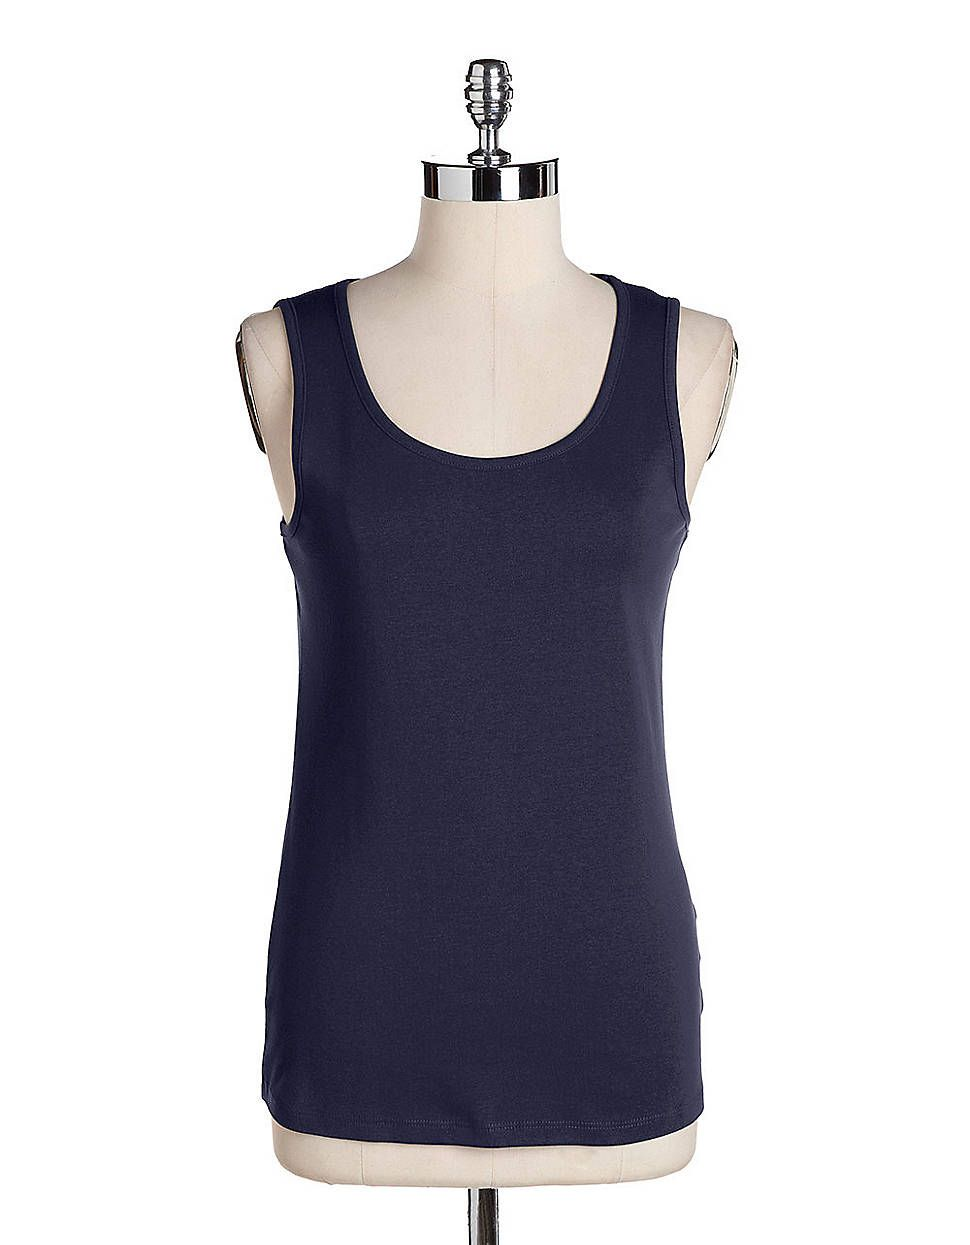 Cotton Tank Top | Lord and Taylor $20